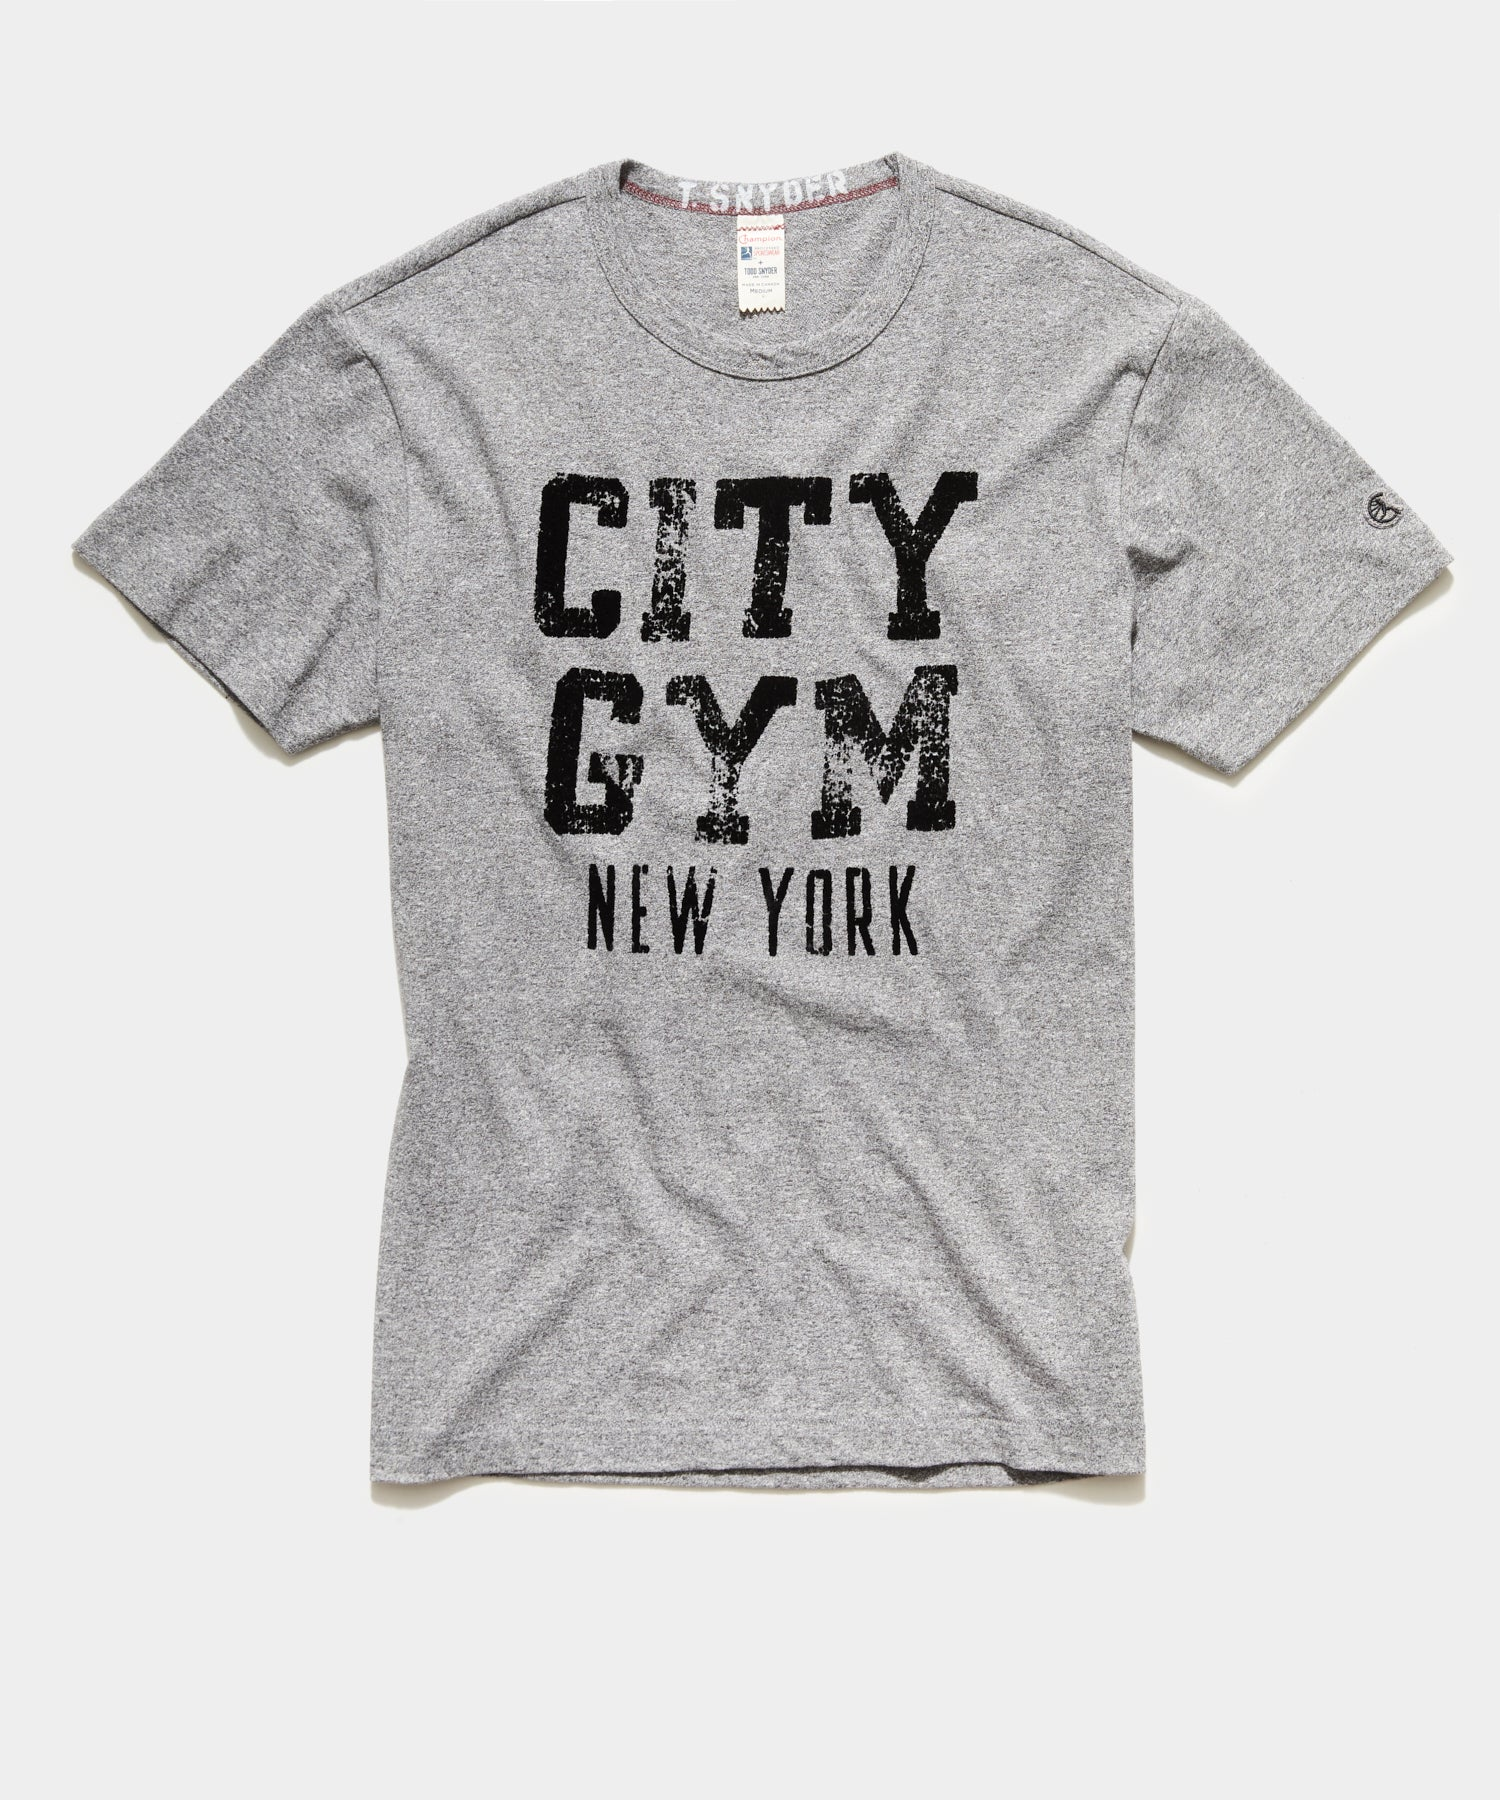 Champion City Gym New York Tee in Salt and Pepper